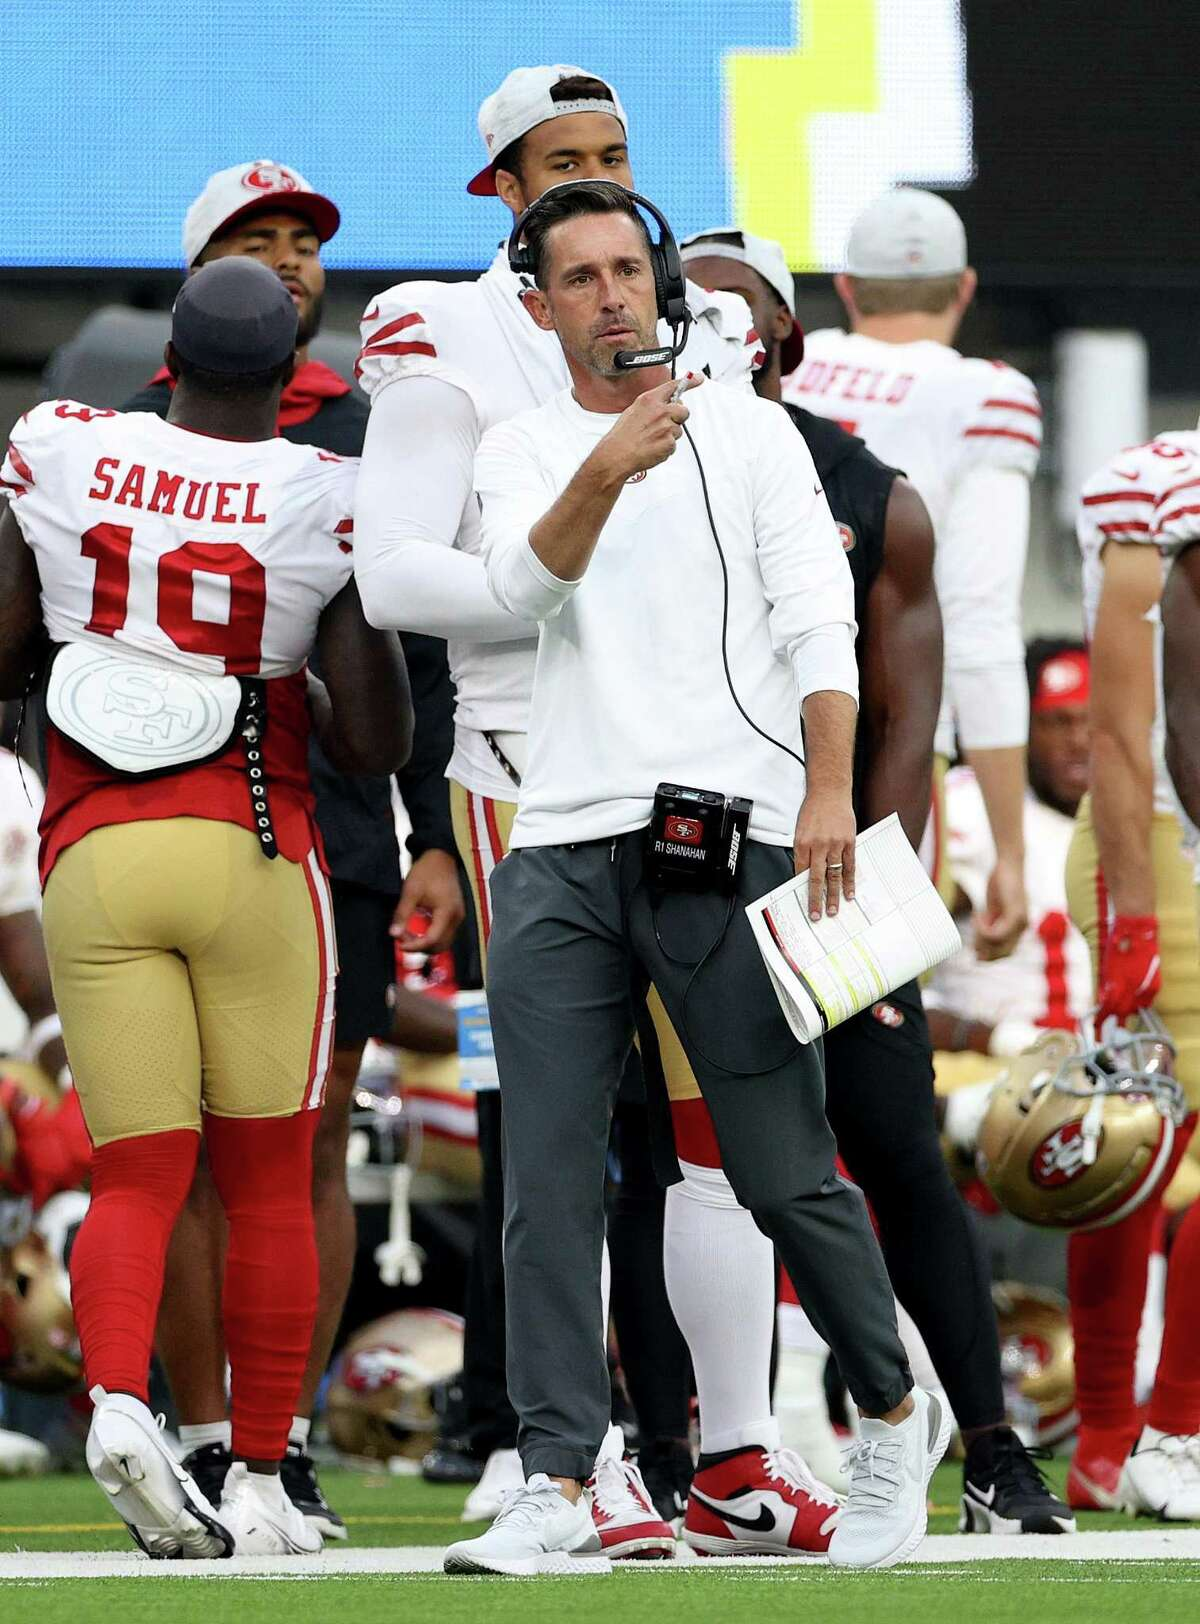 INGLEWOOD, CALIFORNIA - AUGUST 22: Head coach Kyle Shanahan of the San Francisco 49ers on the sidelines during the first half of a preseason game between the Los Angeles Chargers and the San Francisco 49ers at SoFi Stadium on August 22, 2021 in Inglewood, California. (Photo by Harry How/Getty Images)